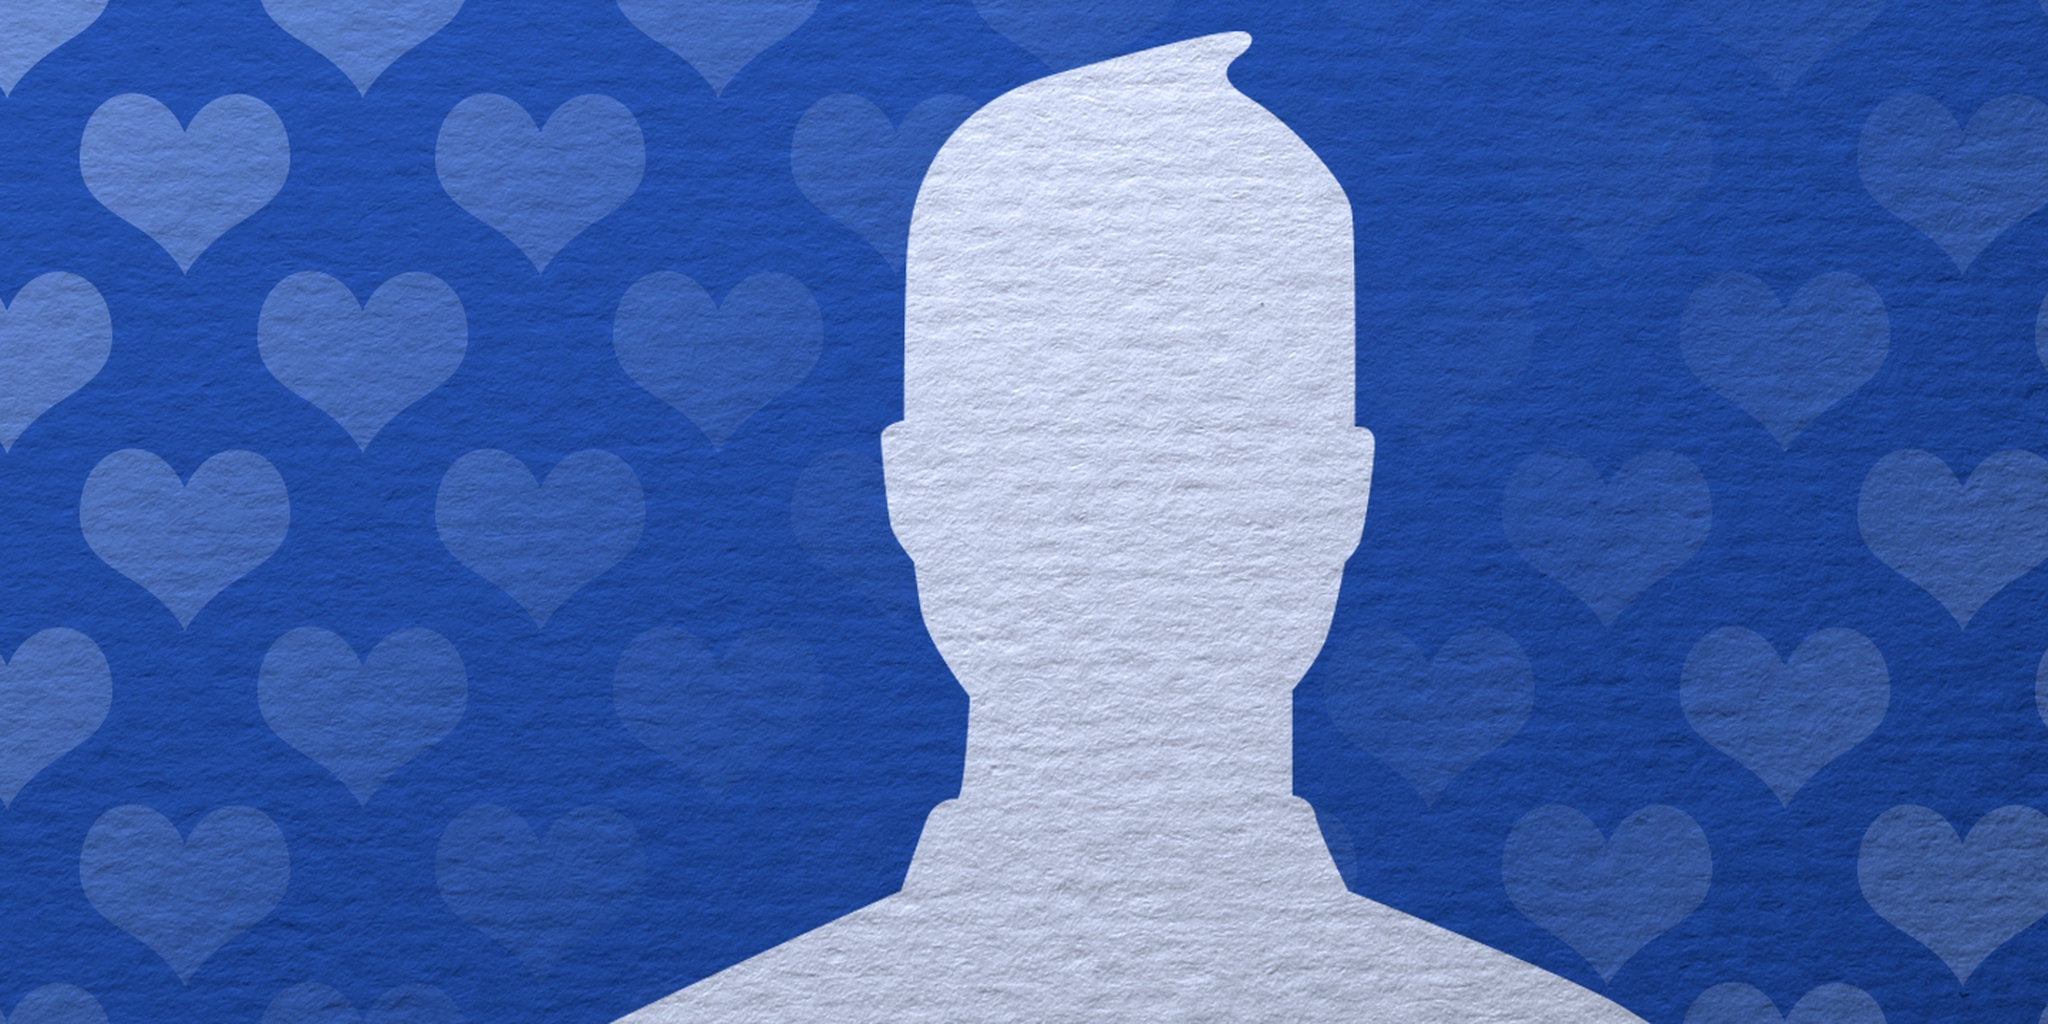 Facebook icon with heart-pattern background